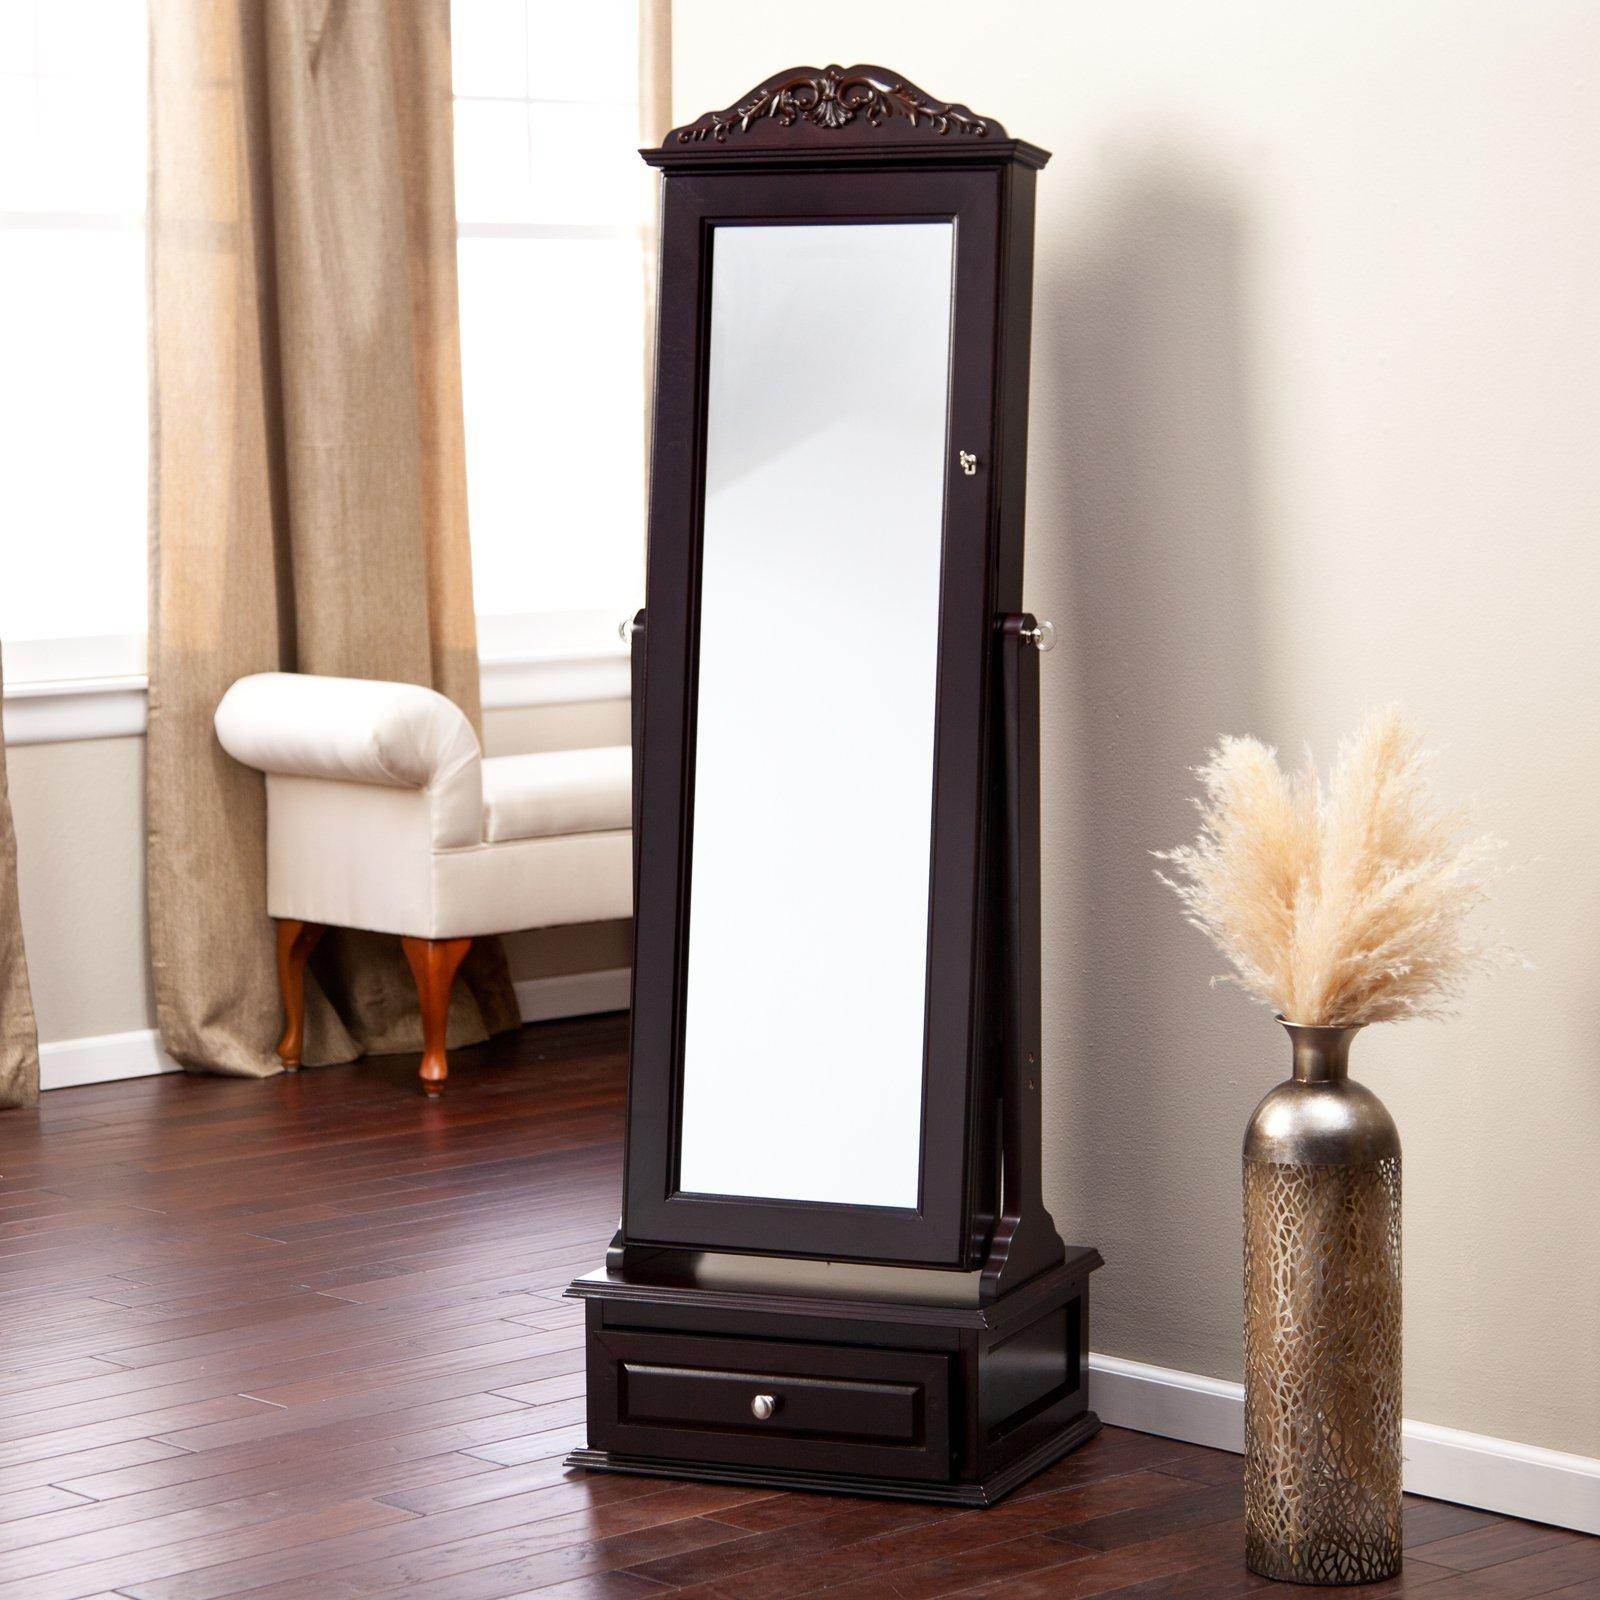 Classy Wall Mounted Mirrors Bedroom With Additional Bedroom With Wall Mounted Mirrors For Bedroom (Image 8 of 20)